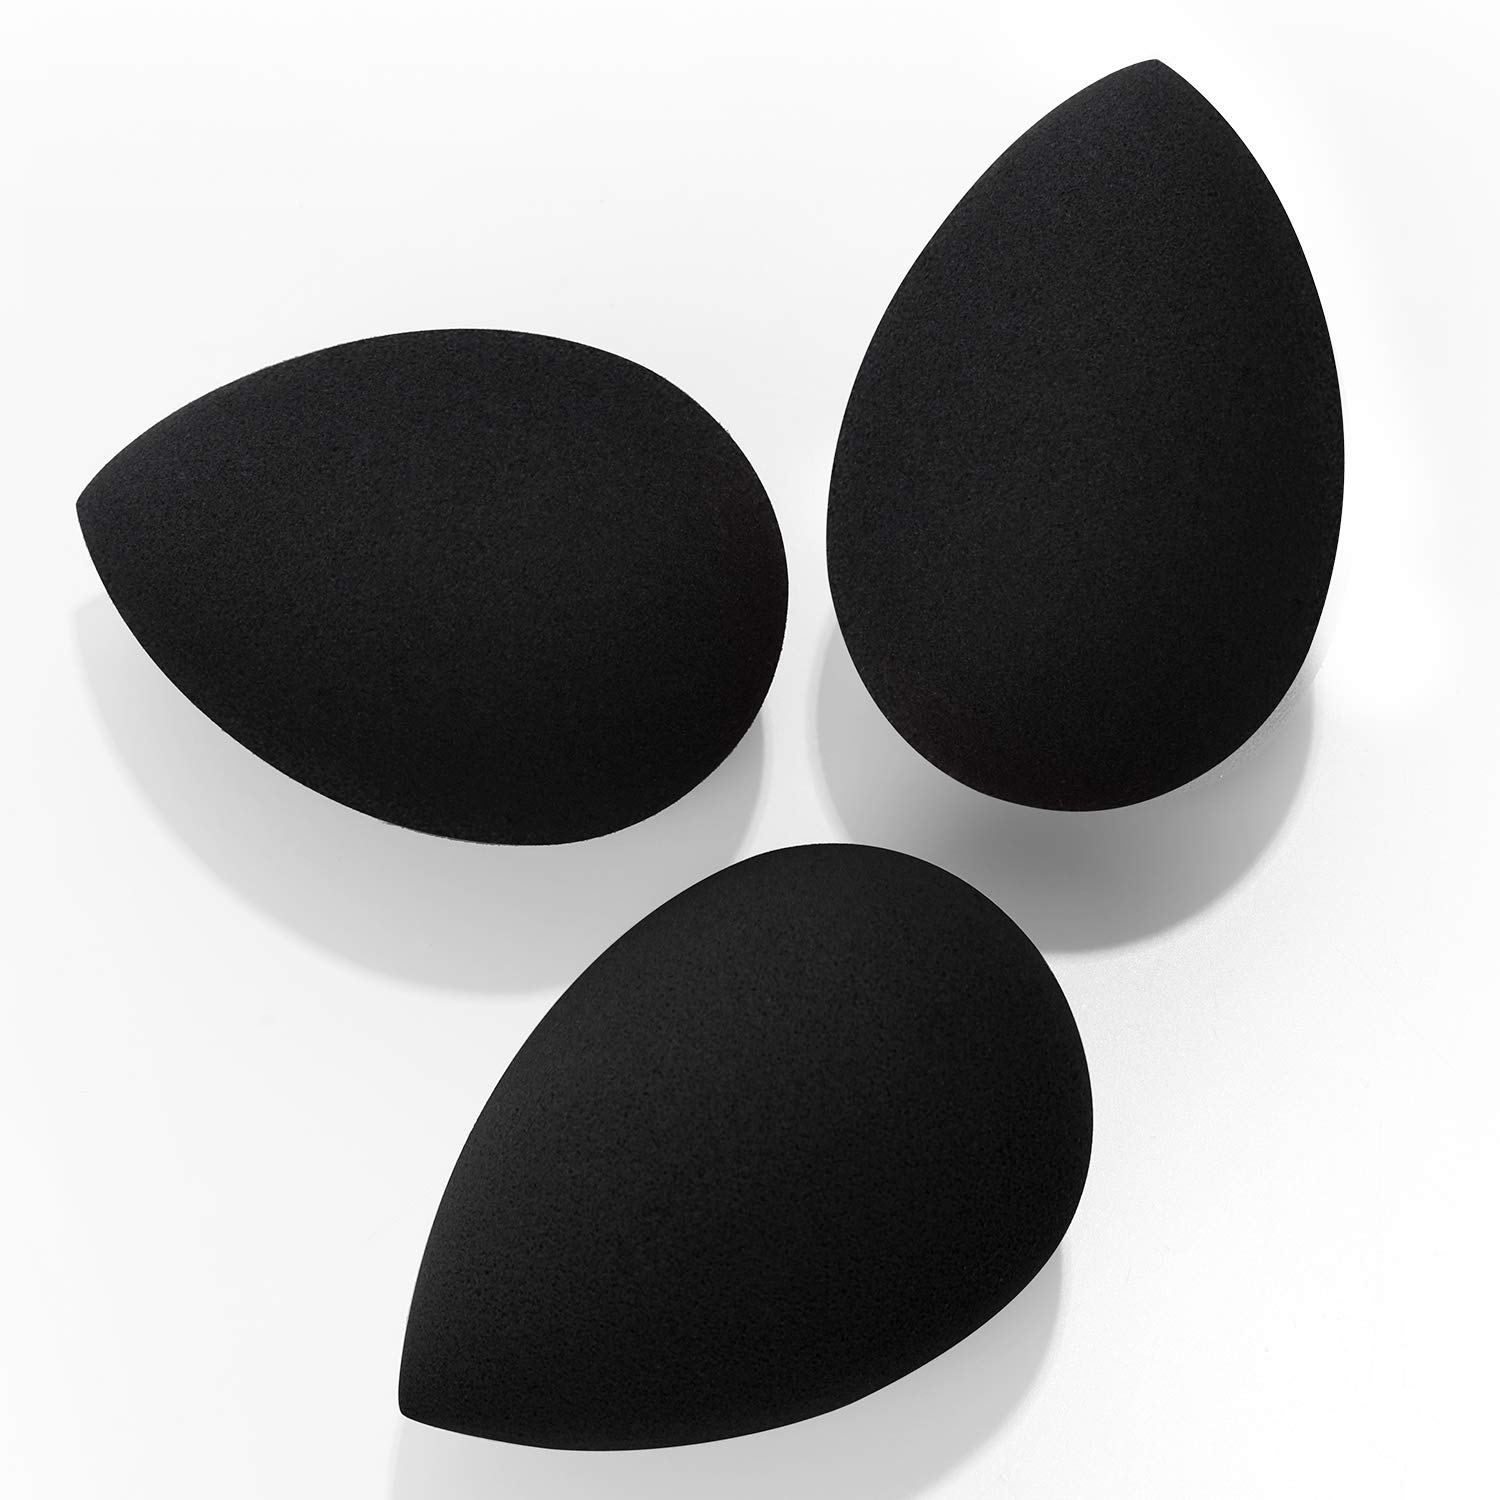 Makeup Sponges, Larbois 3-Pack Blender Beauty Foundation Blending Sponge, Professional Beauty Makeup Set for Dry & Wet Use (Drop, Black+Black+Black)